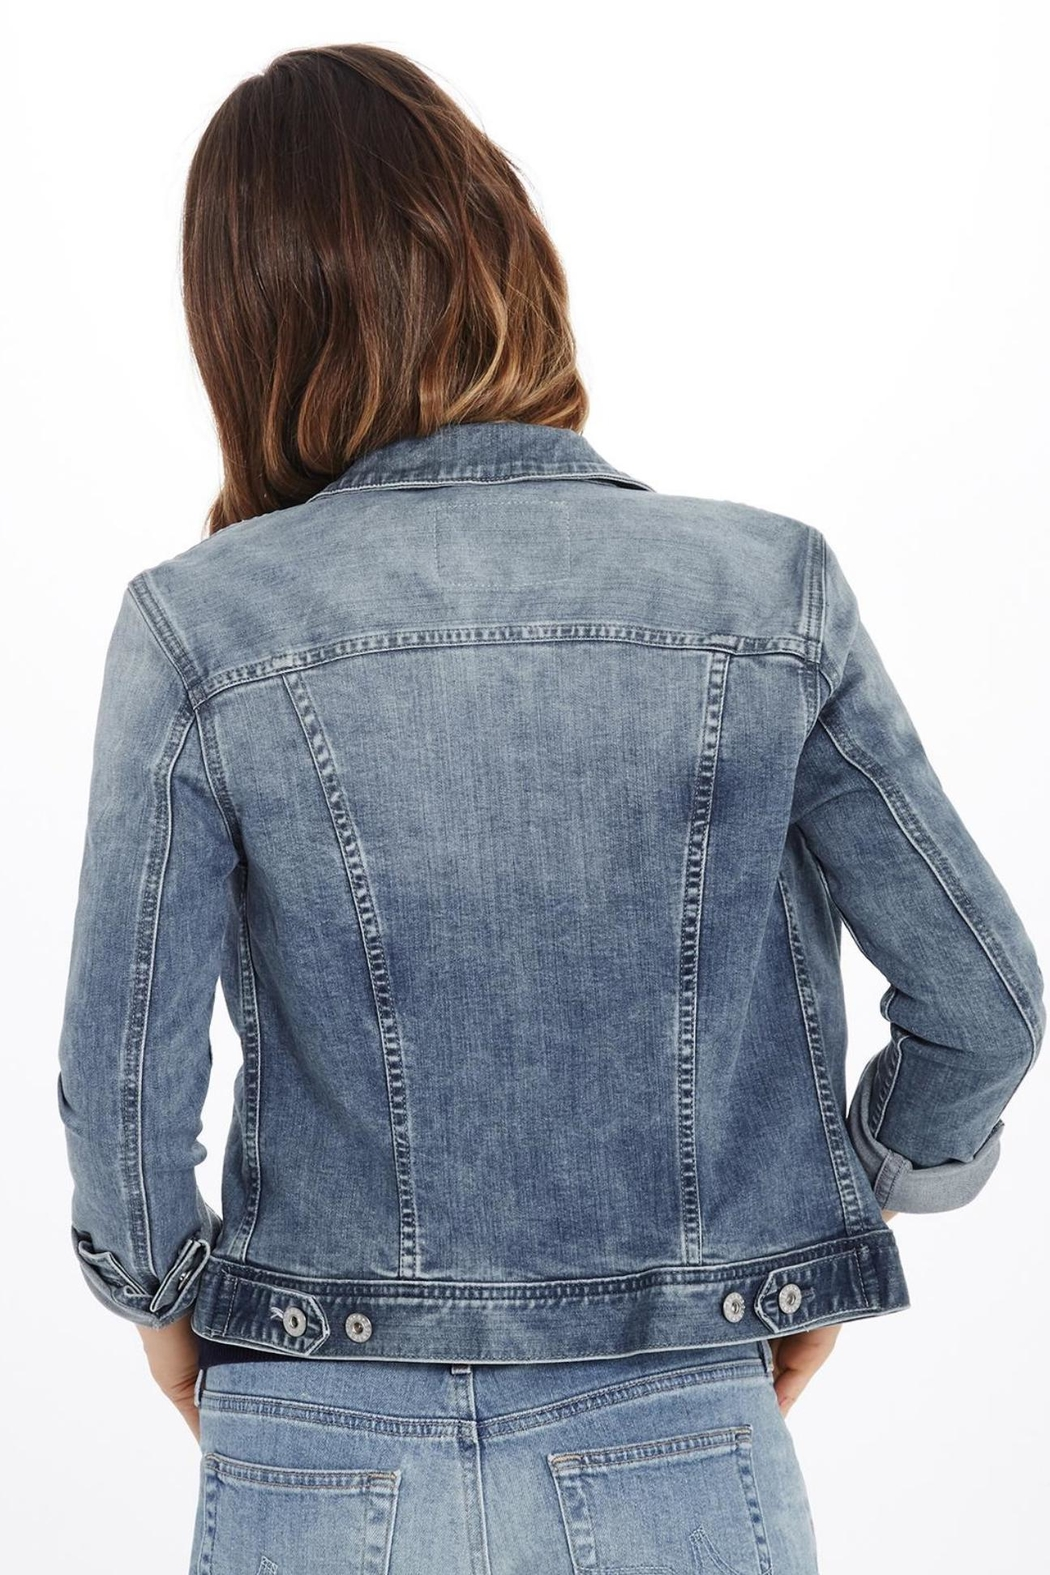 AG Adriano Goldschmied Robyn Jacket - Front Full Image